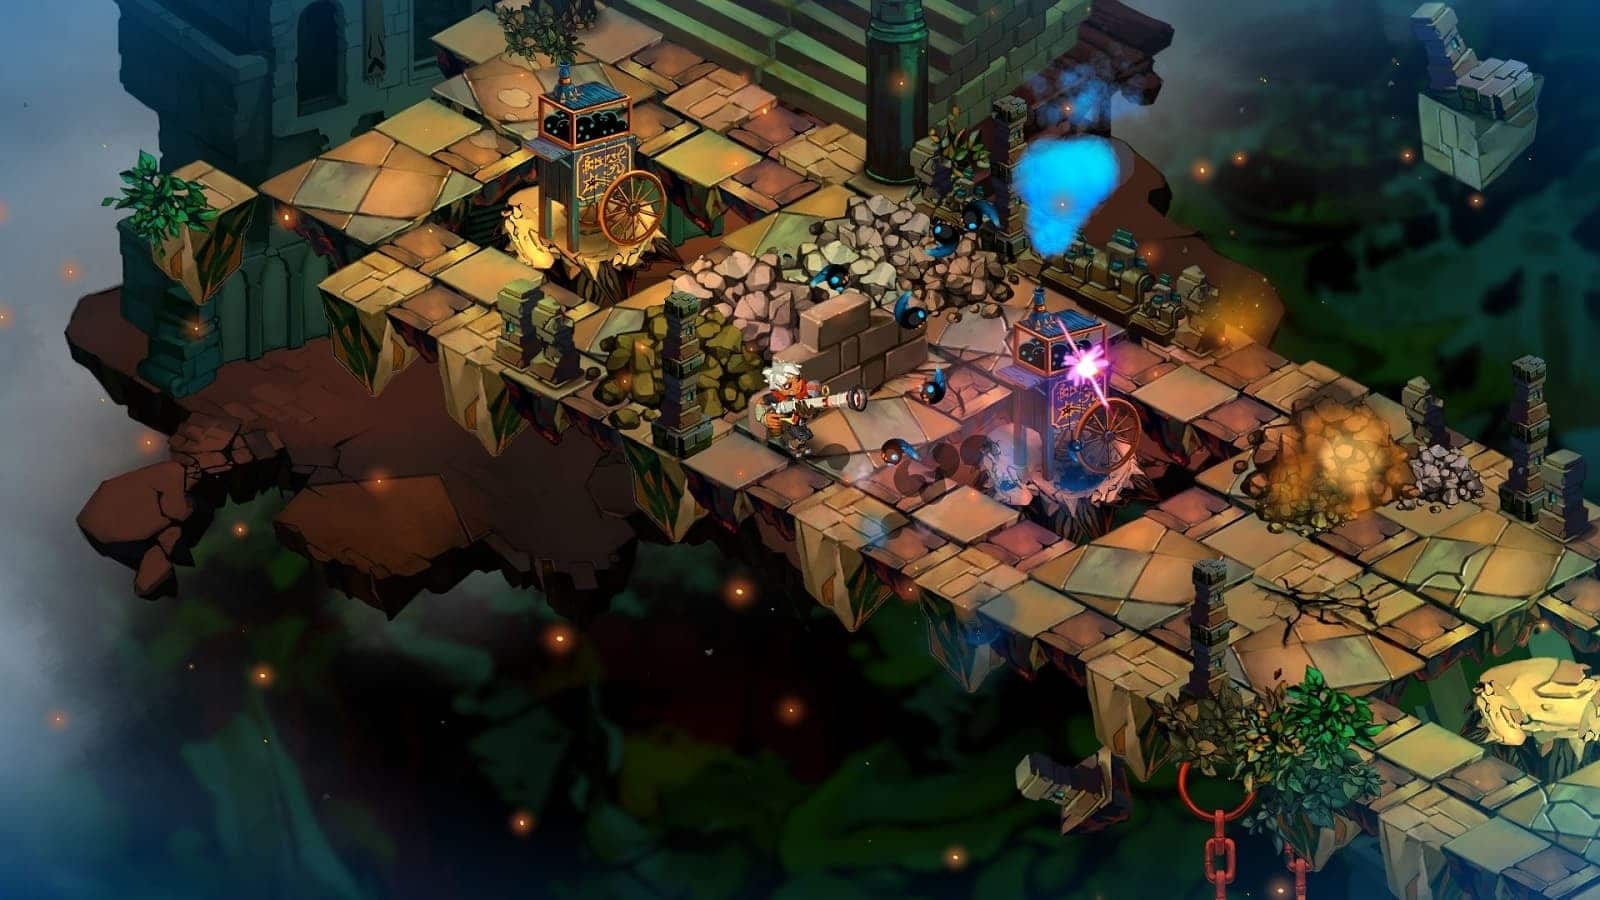 bastion gameplay from supergiant games